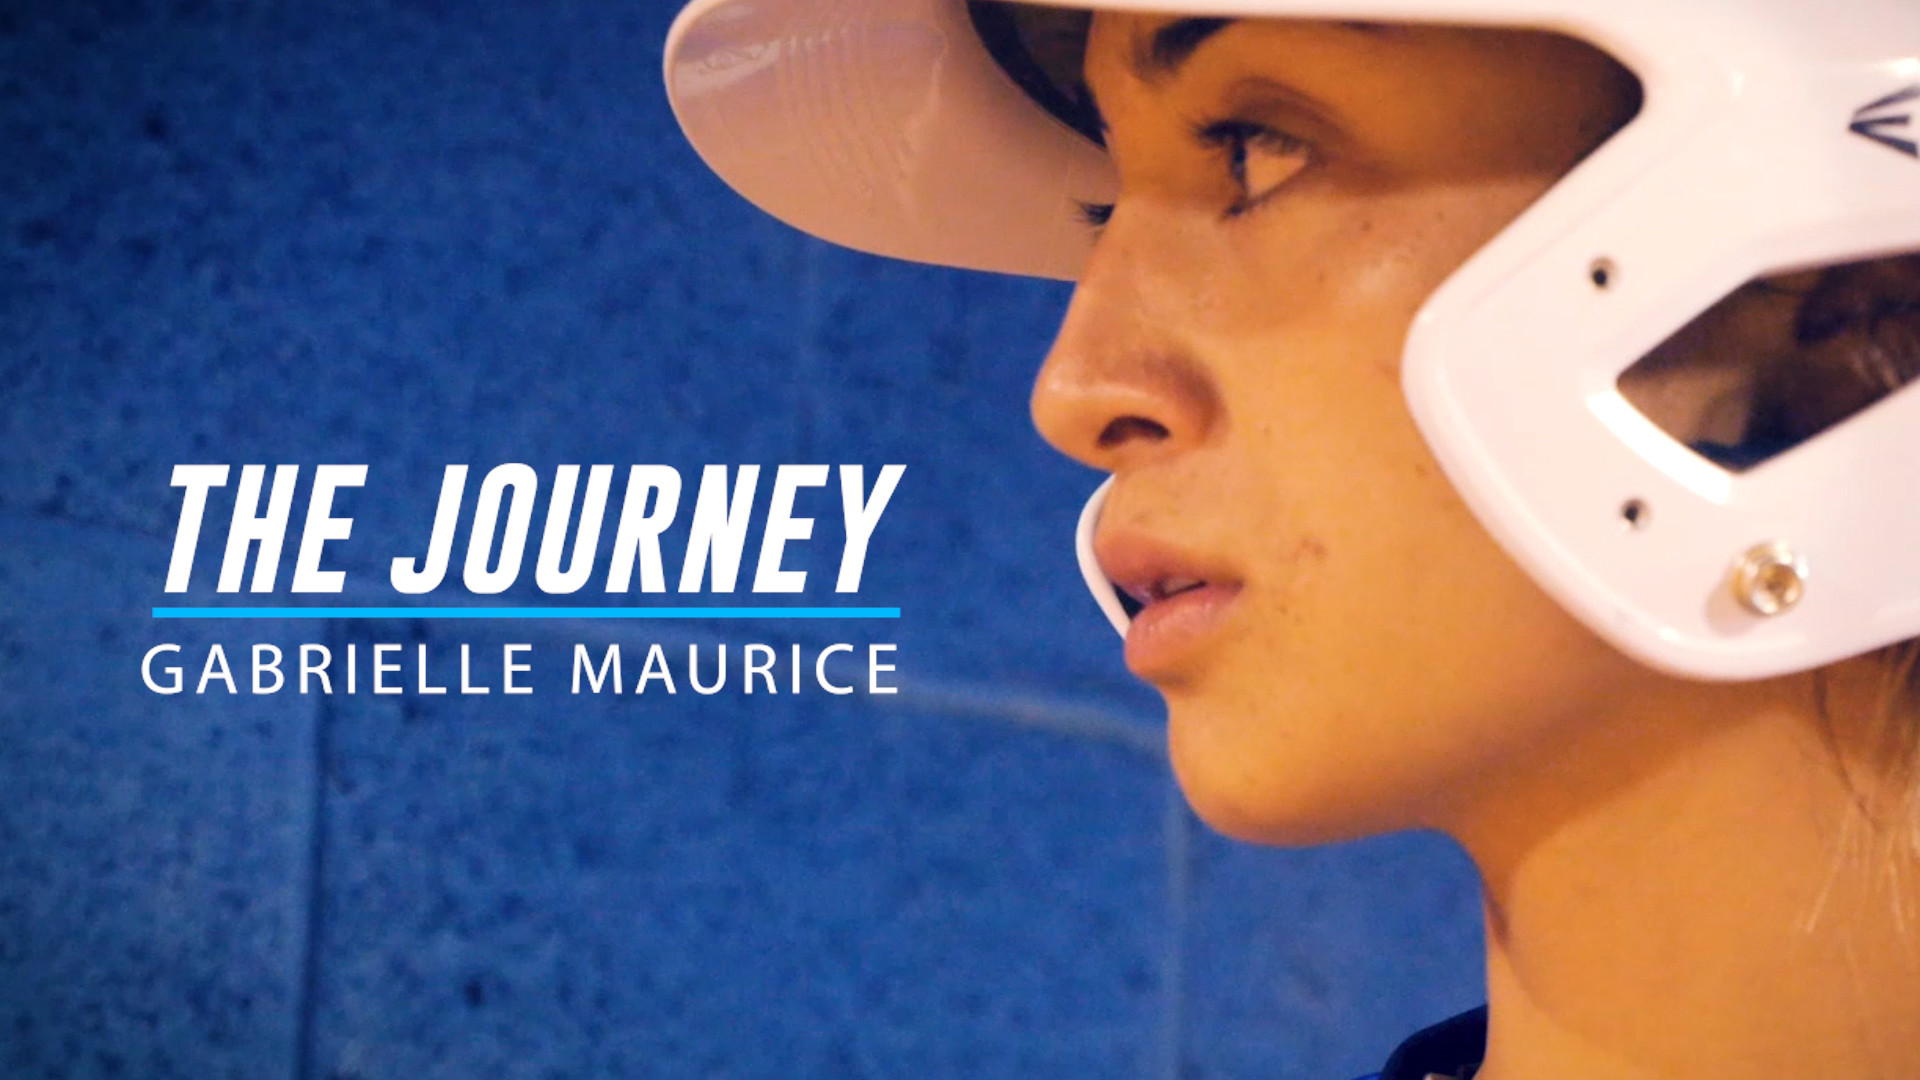 1920x1080 The Journey: Gabrielle Maurice